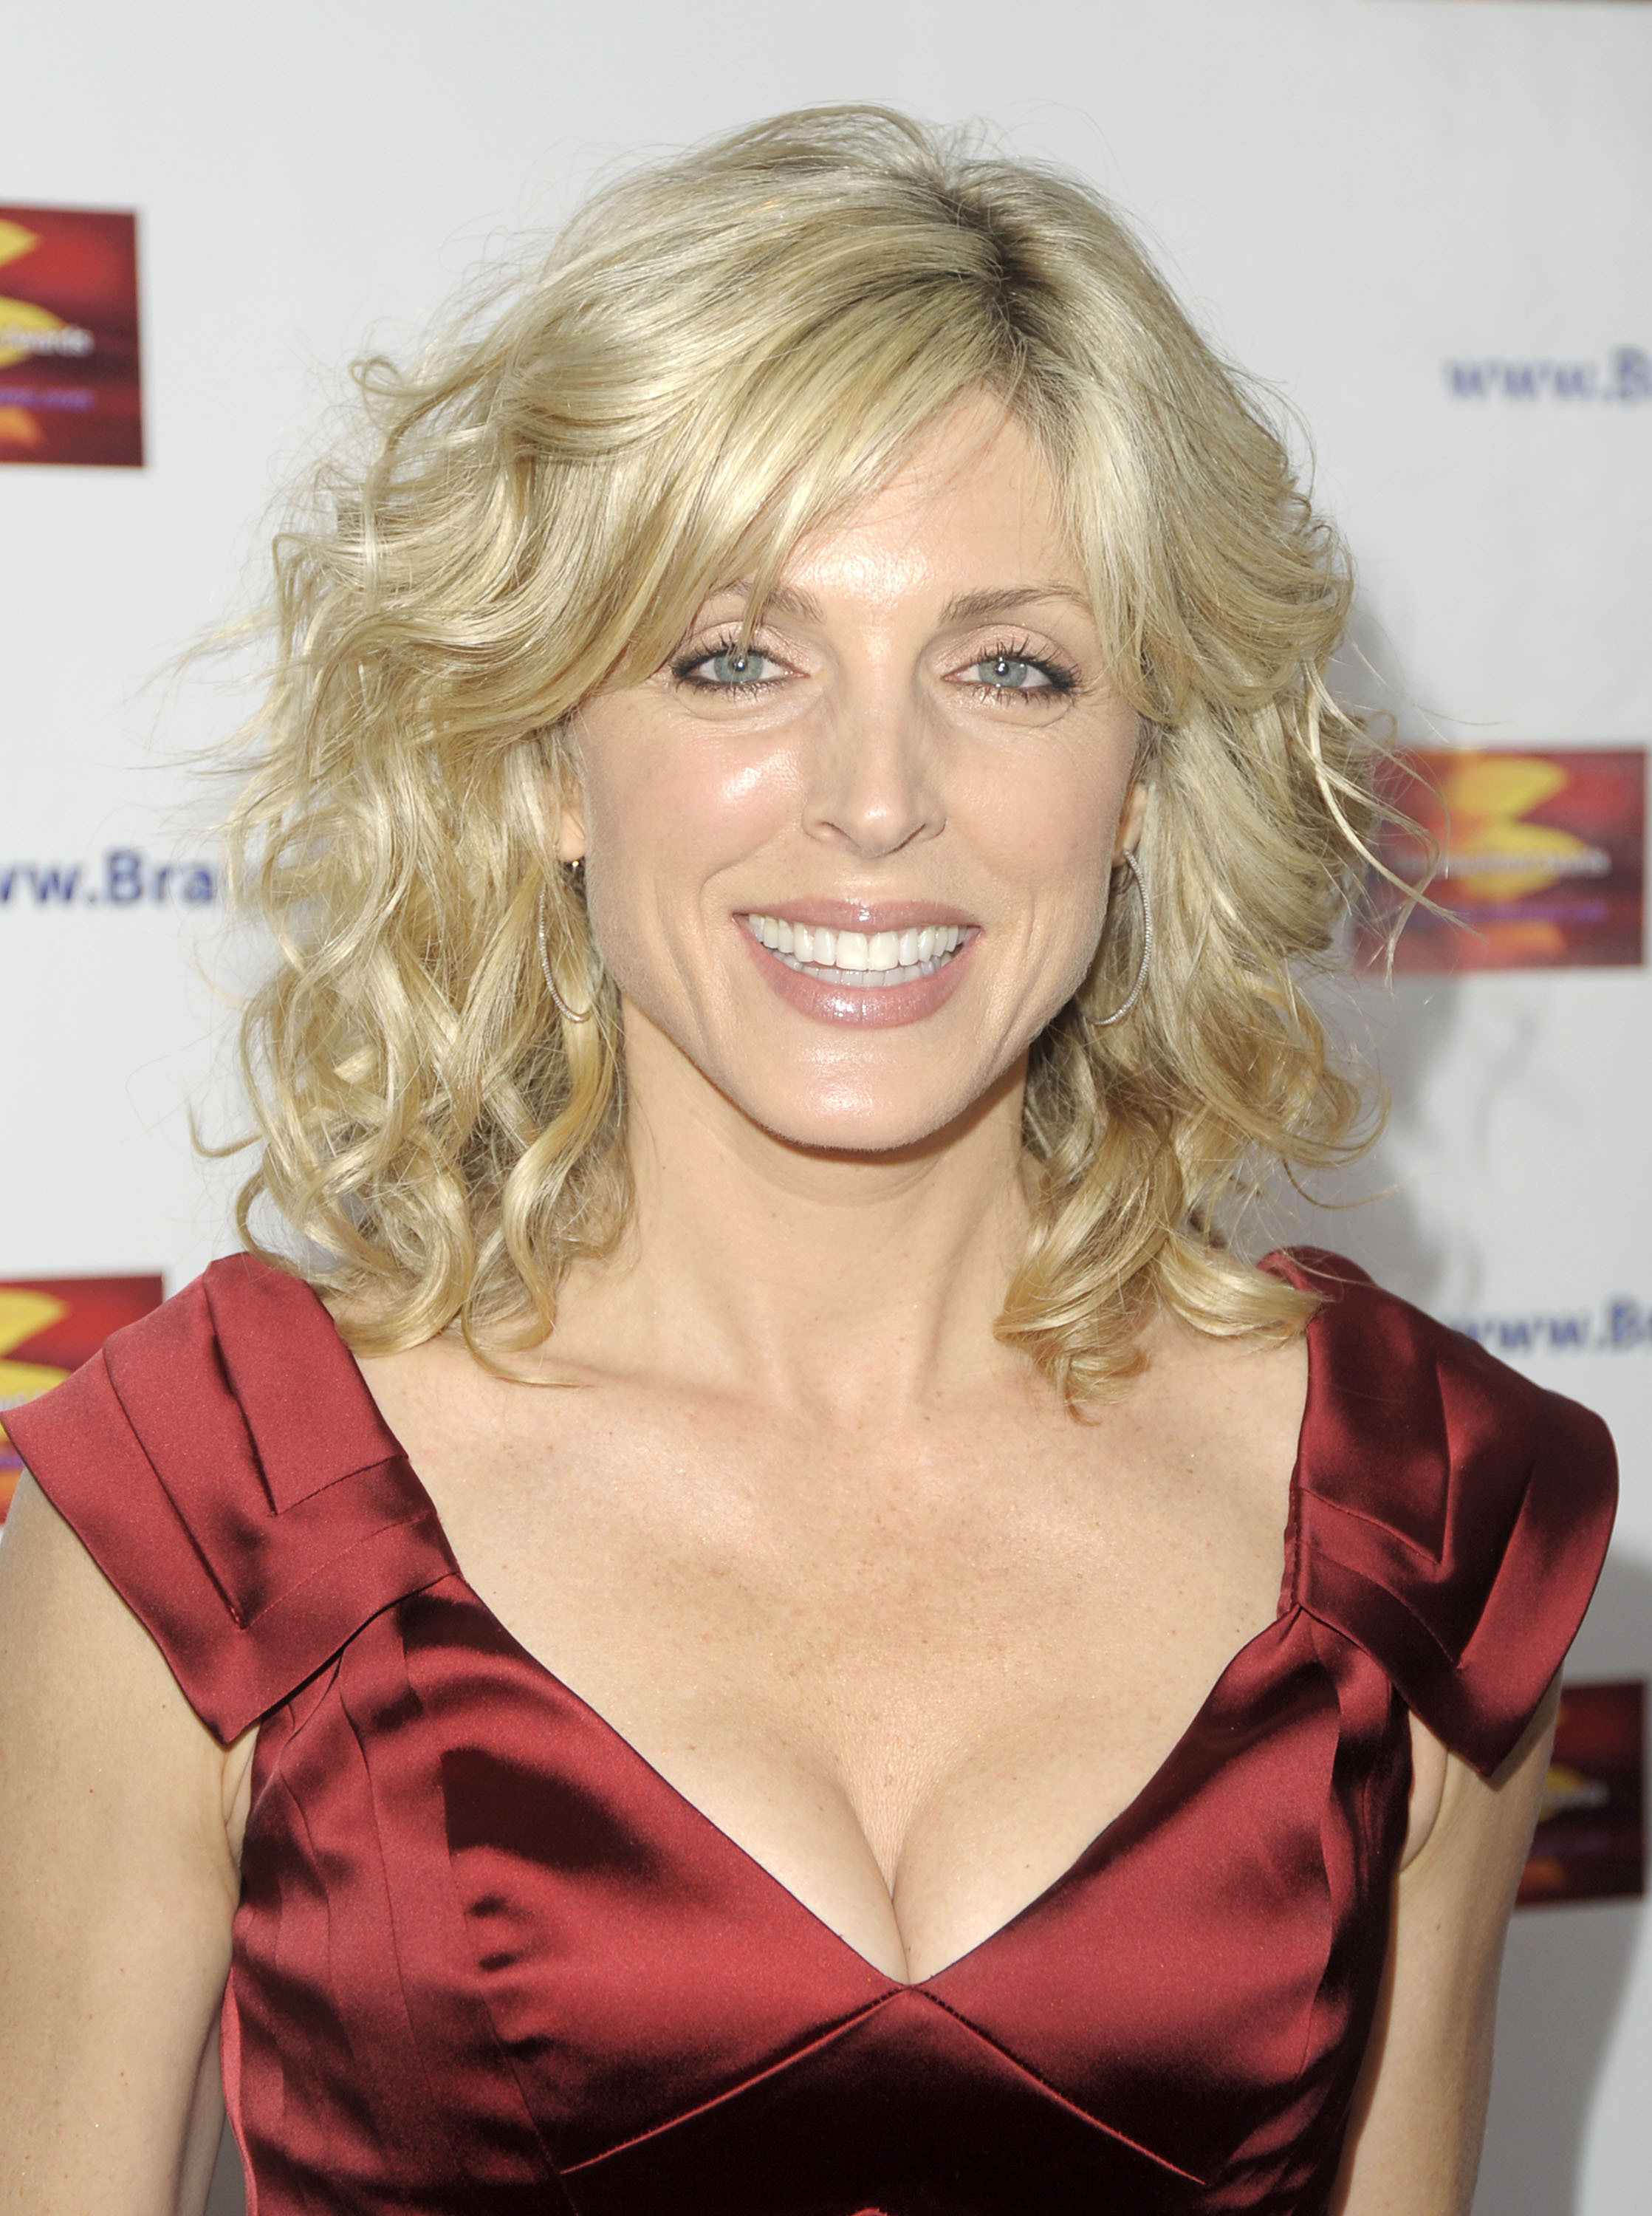 Marla Maples - photos, news, filmography, quotes and facts - Celebs ...